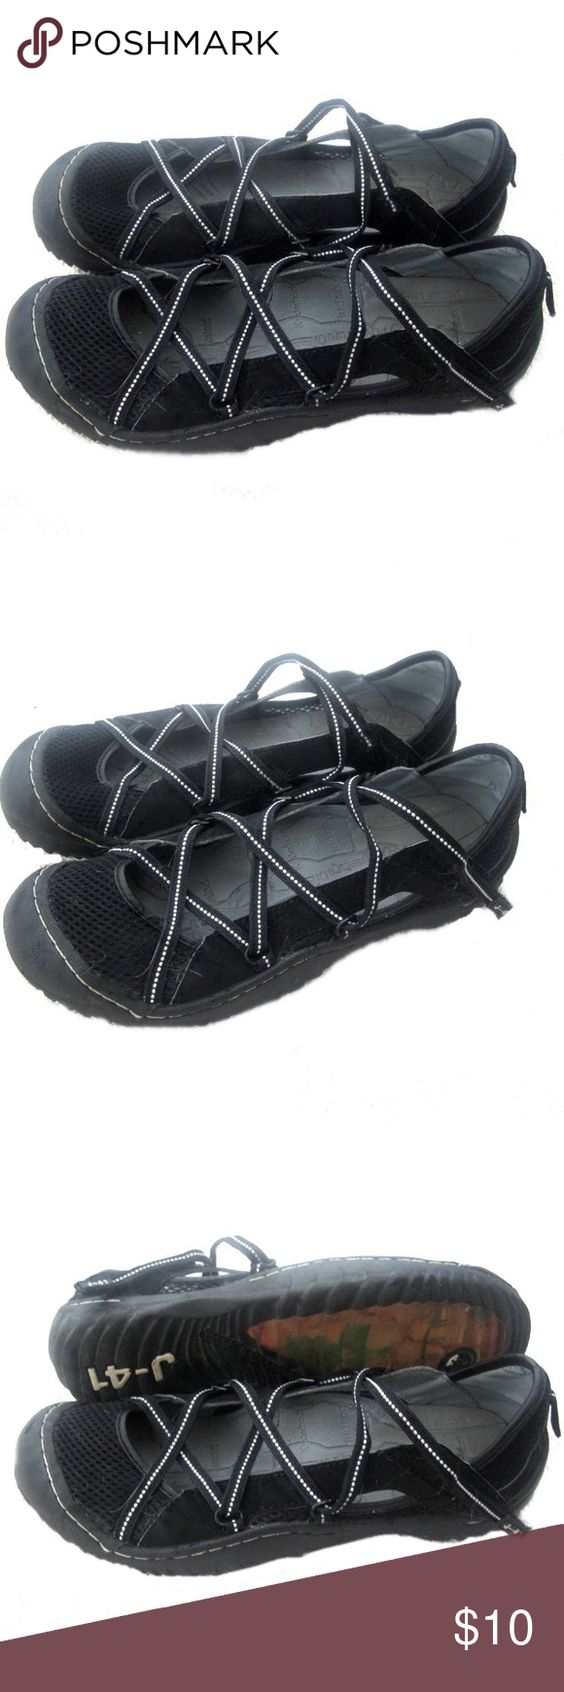 J-41 Jeep Sport Hiking Waterproof Shoes J-41 waterproof hiking shoes. Black color. Adjustable straps. Size 8. Jeep-engineered traction outdoor. Excellent pre-owned condition. J-41 Shoes Athletic Shoes